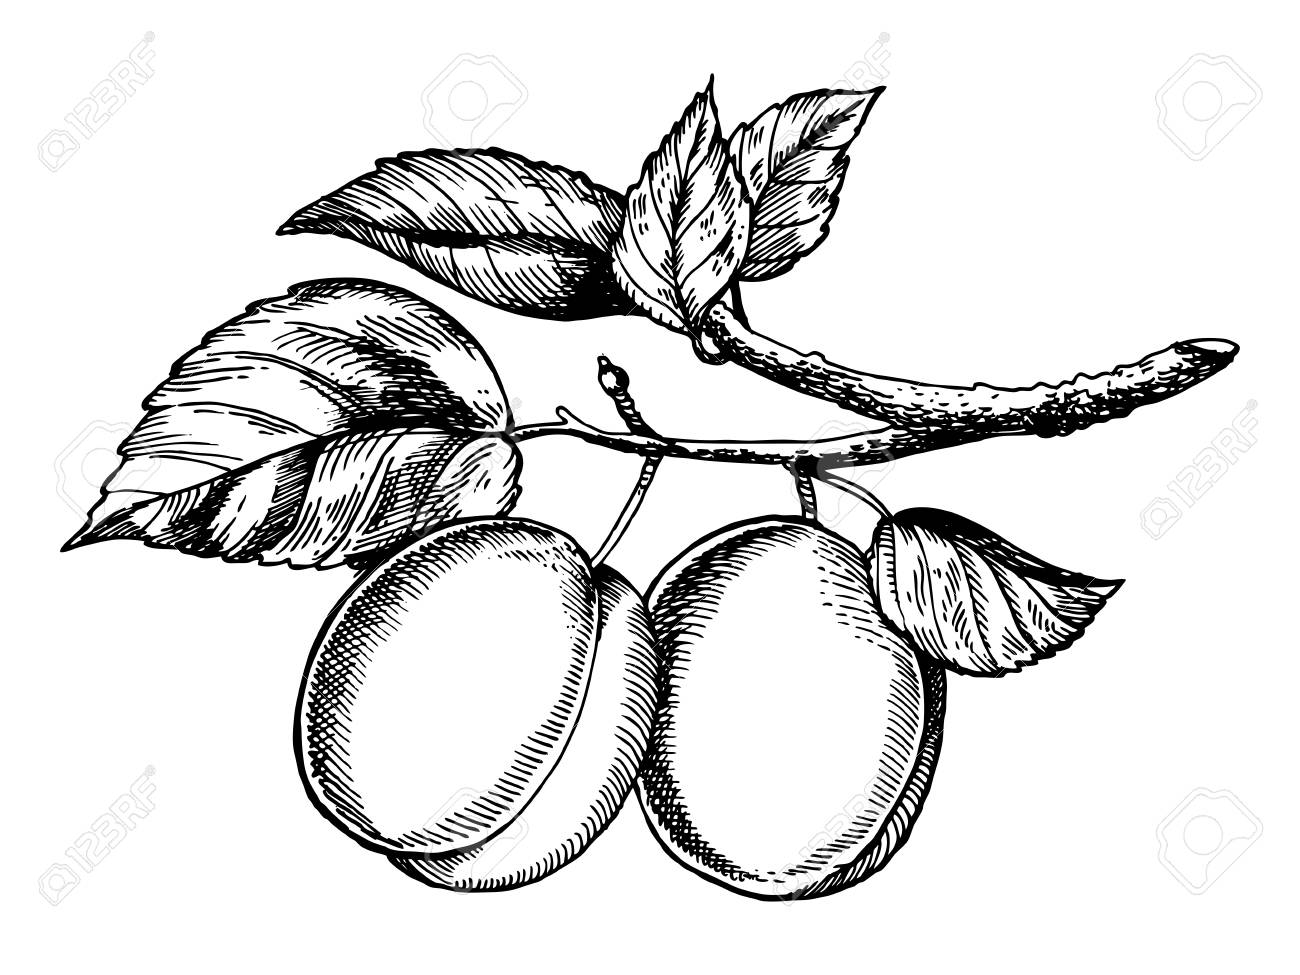 1300x975 Plum Fruit On Tree Branch Engraving Vector Illustration. Scratch